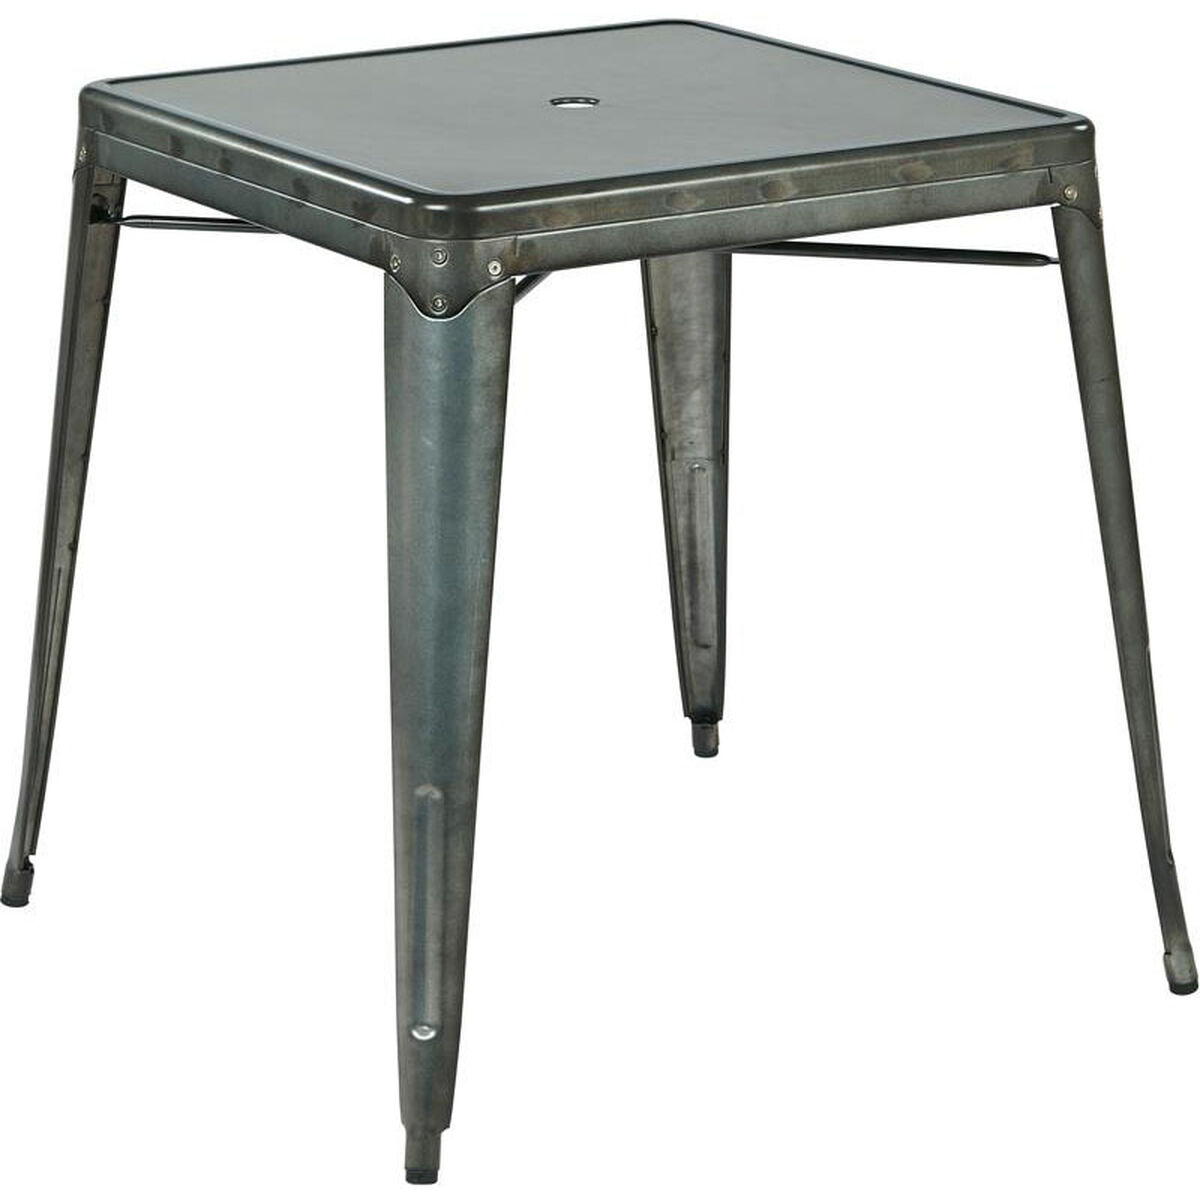 Our Osp Designs Bristow Metal Dining Table With Umbrella Hole Matte Galvanized Finish Is On